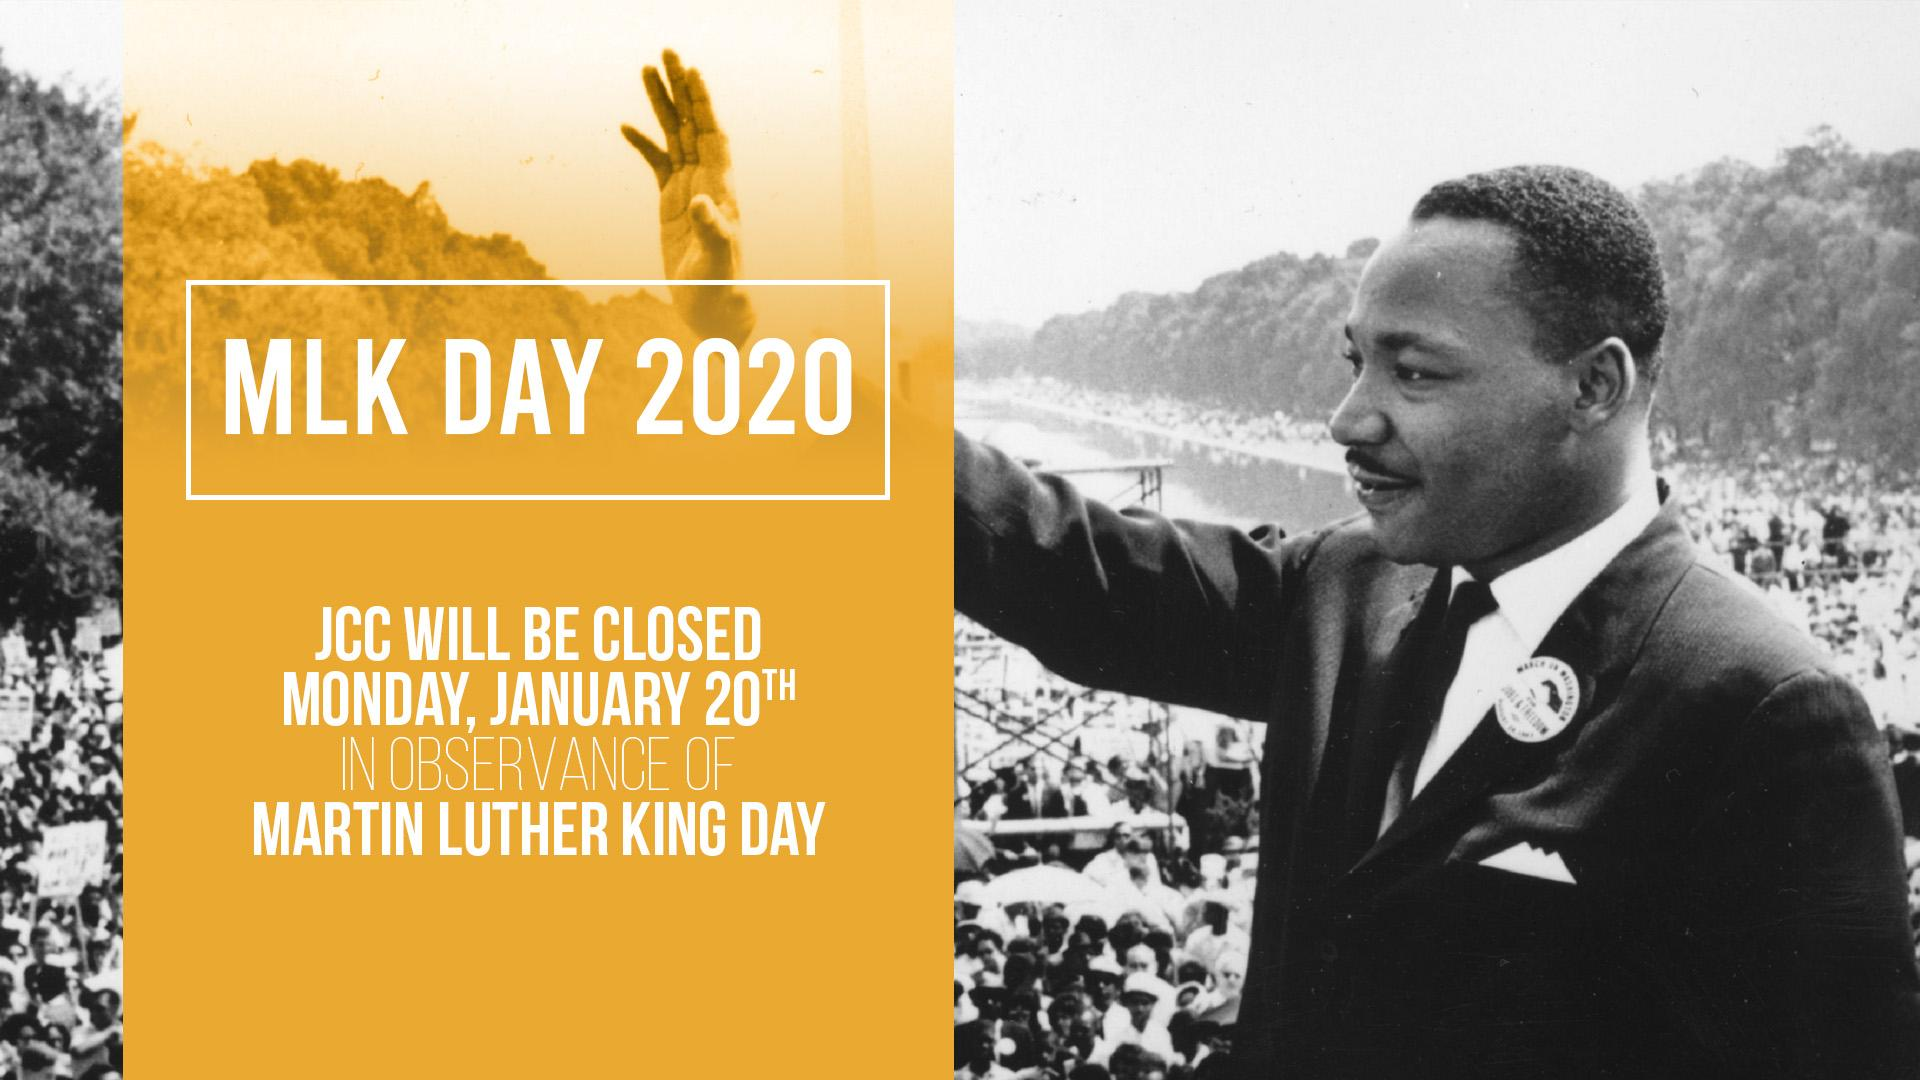 Martin Luther King Jr. Day 2020. JCC will be closed Monday January 20 in observance of Martin Luther King Jr. Day.